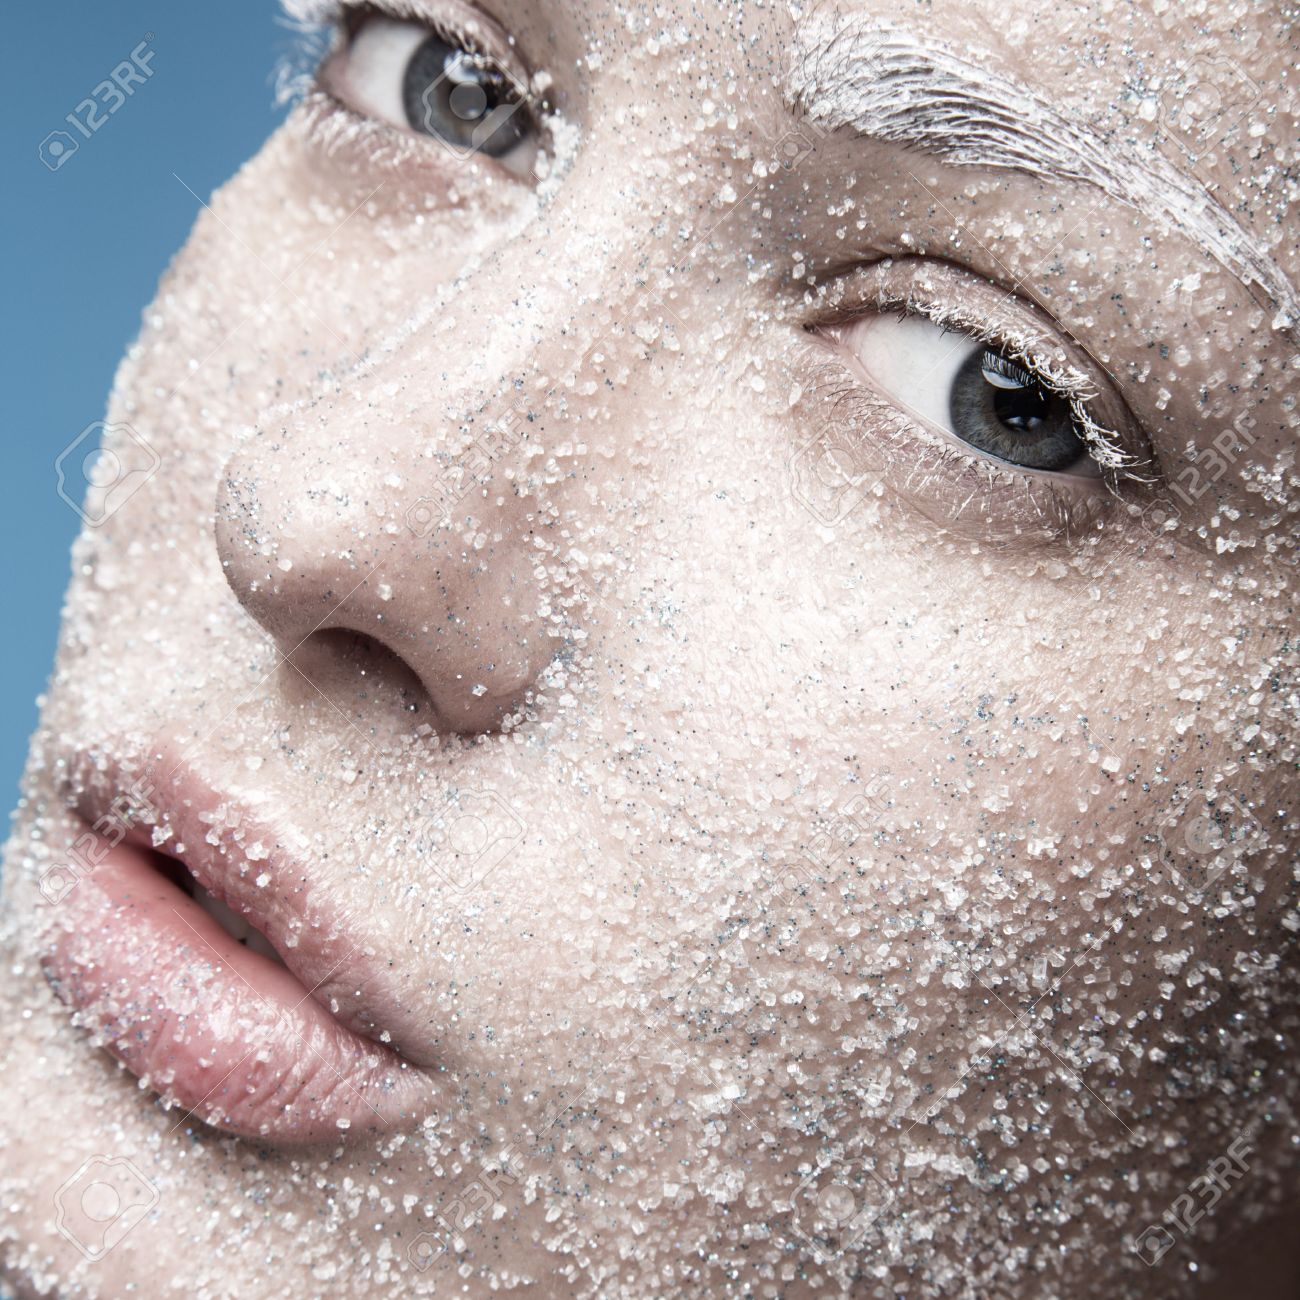 Portrait of a girl with pale skin and sugar snow on her face. Creative art beauty fashion. Picture taken in the studio on a blue background. - 46801124